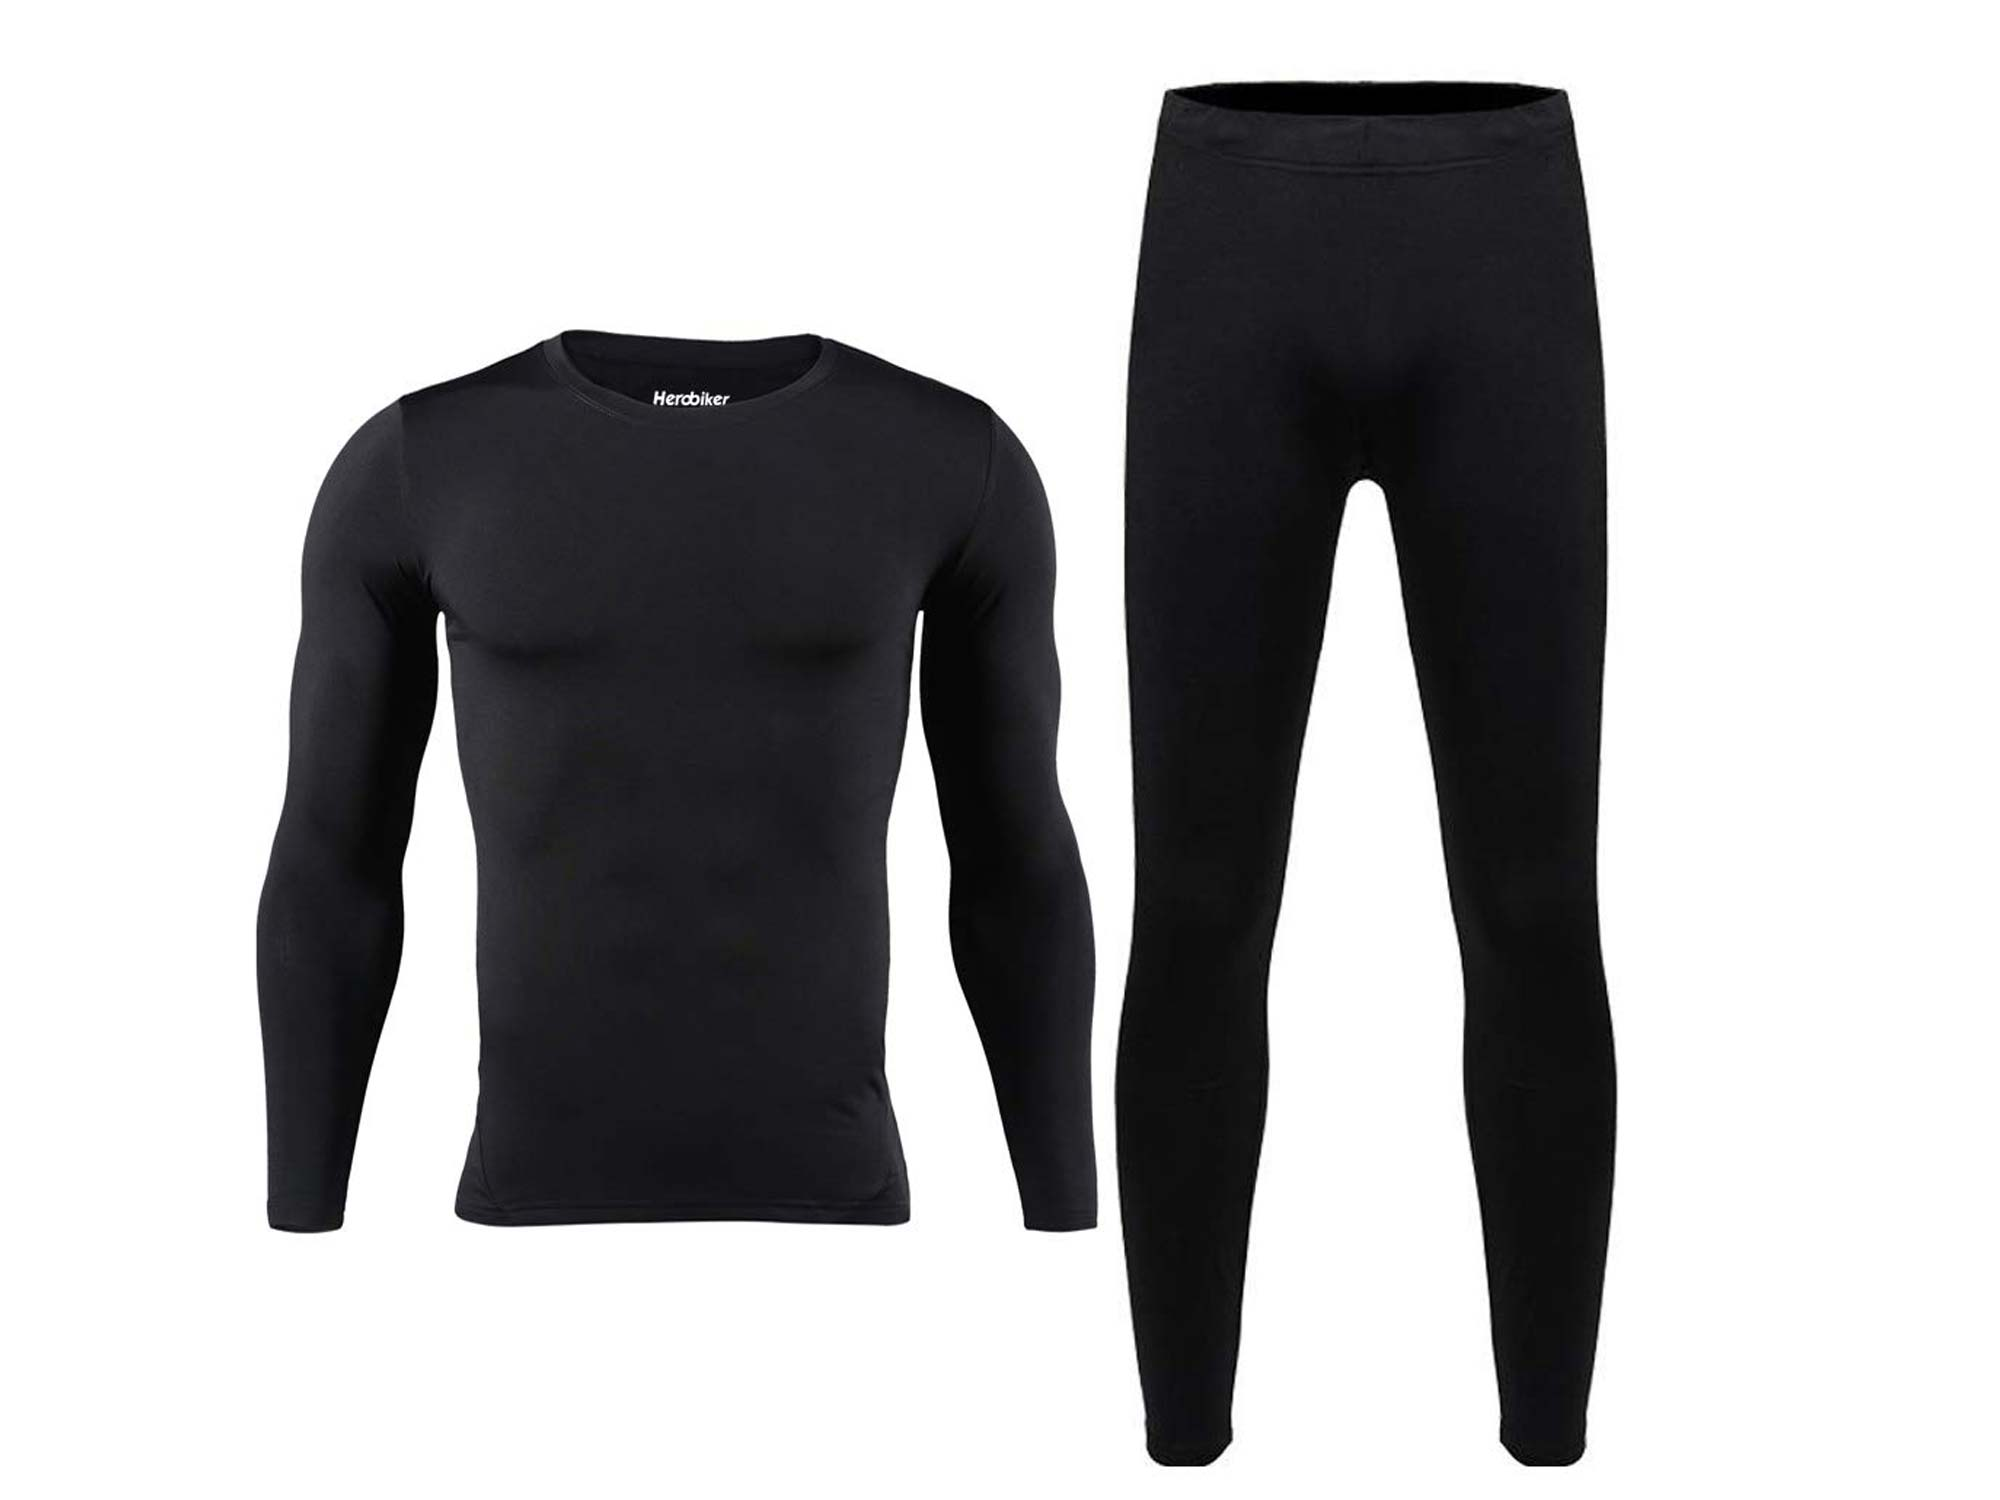 Black thermal base layer outfit